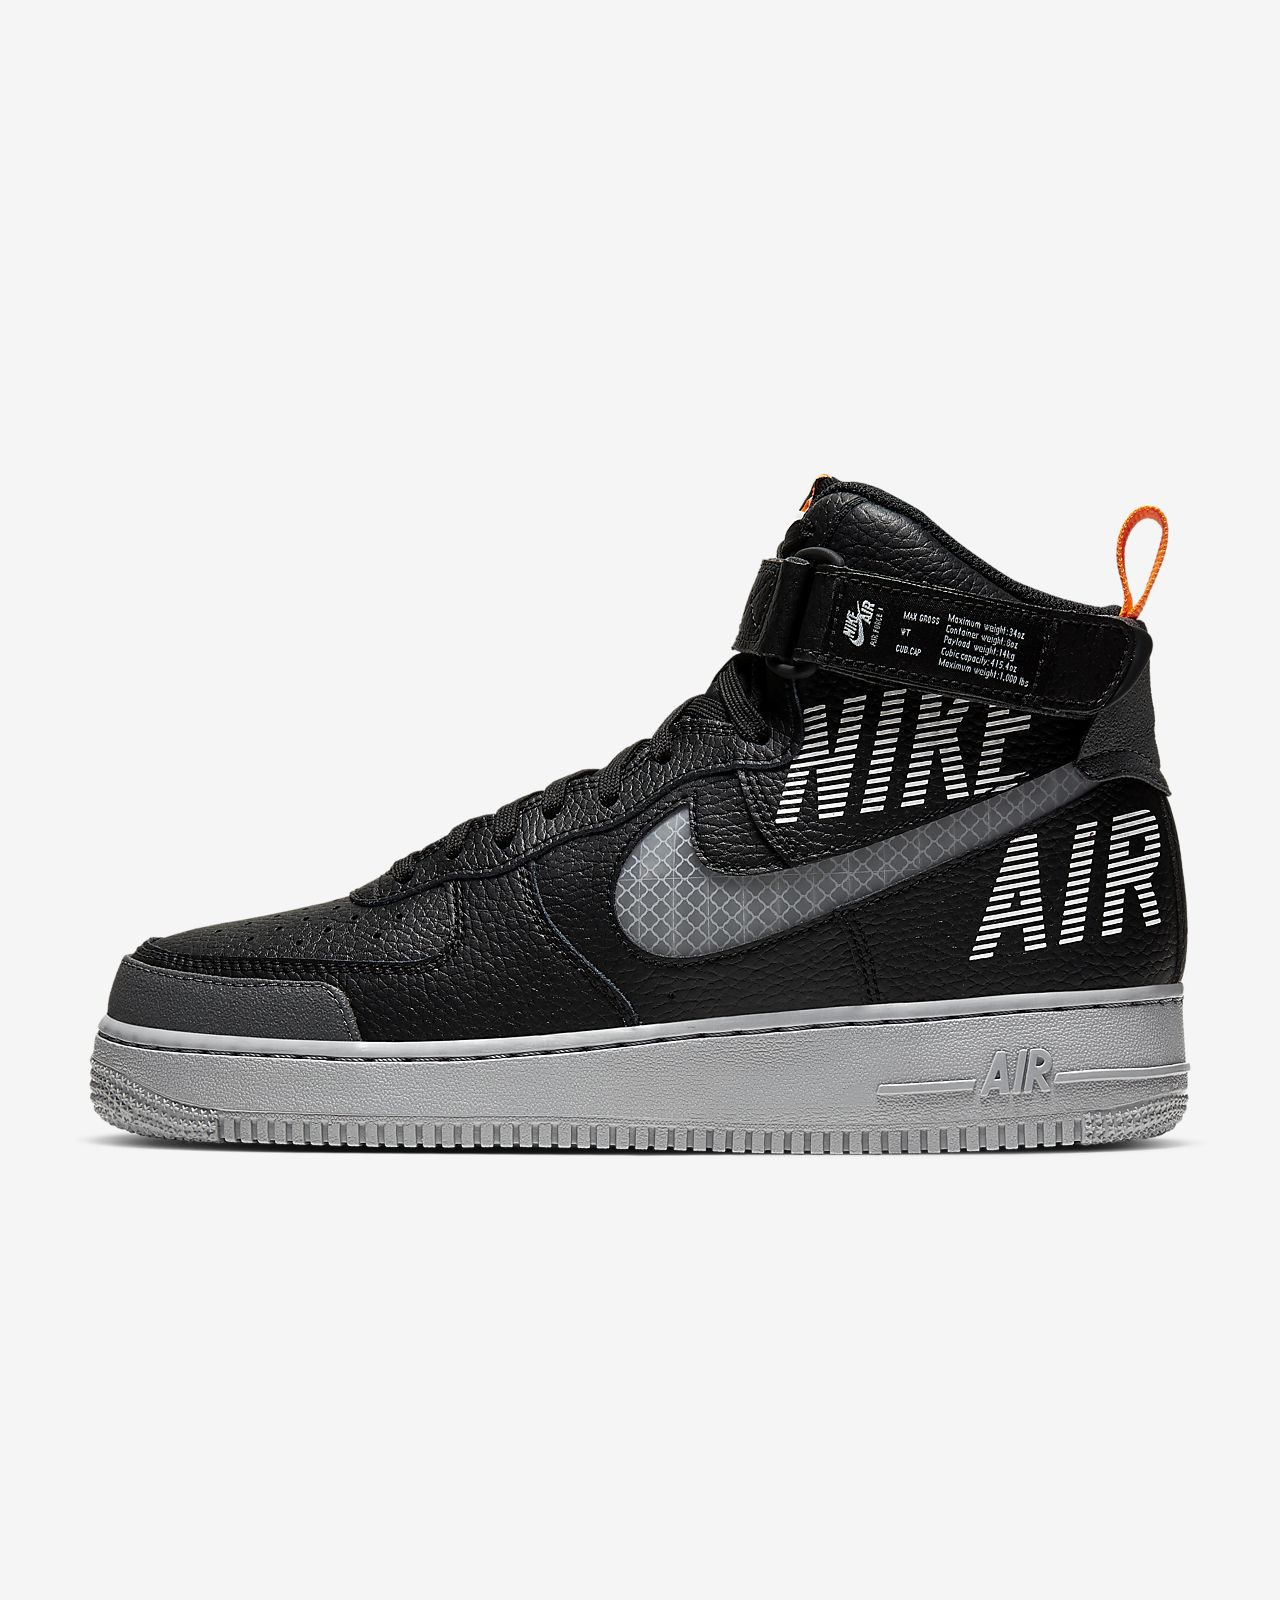 Chaussure Nike Air Force 1 High '07 LV8 2 pour Homme